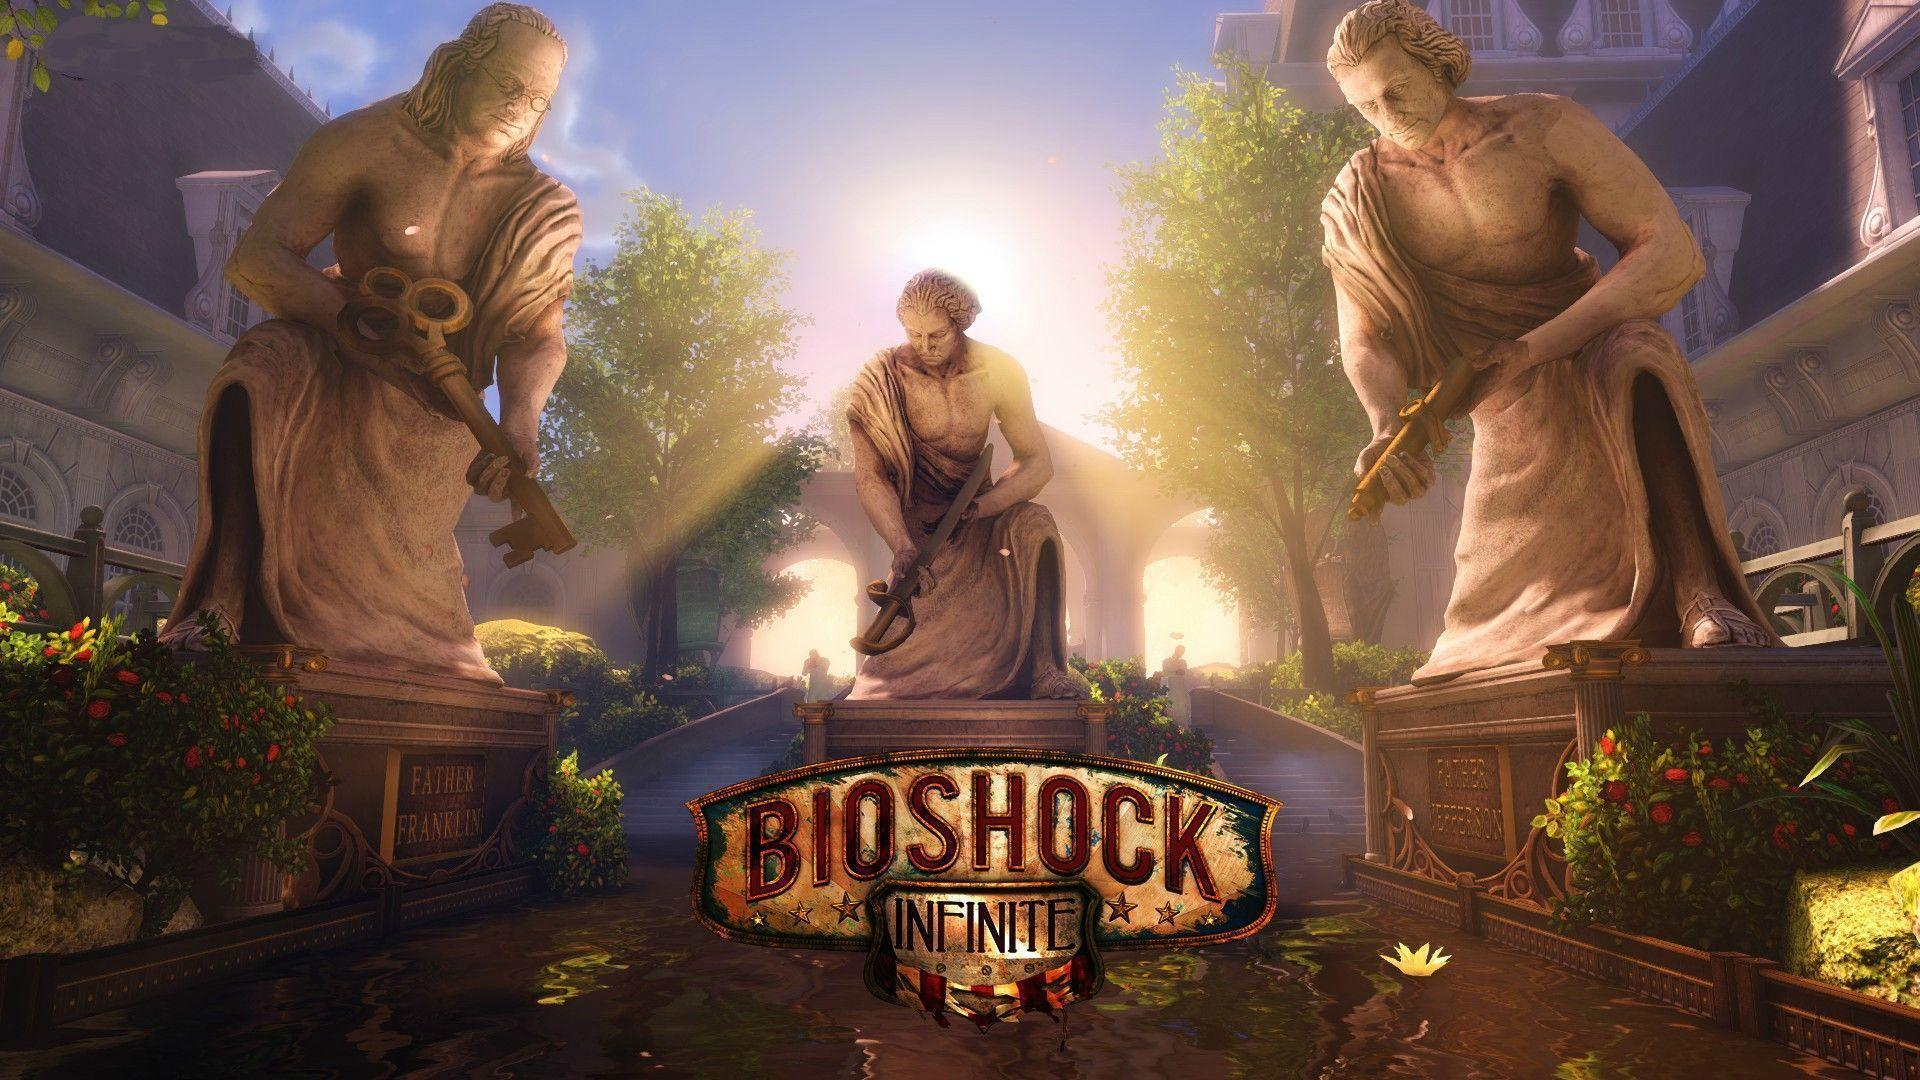 Image For > Bioshock Infinite Hd Wallpapers 1080p